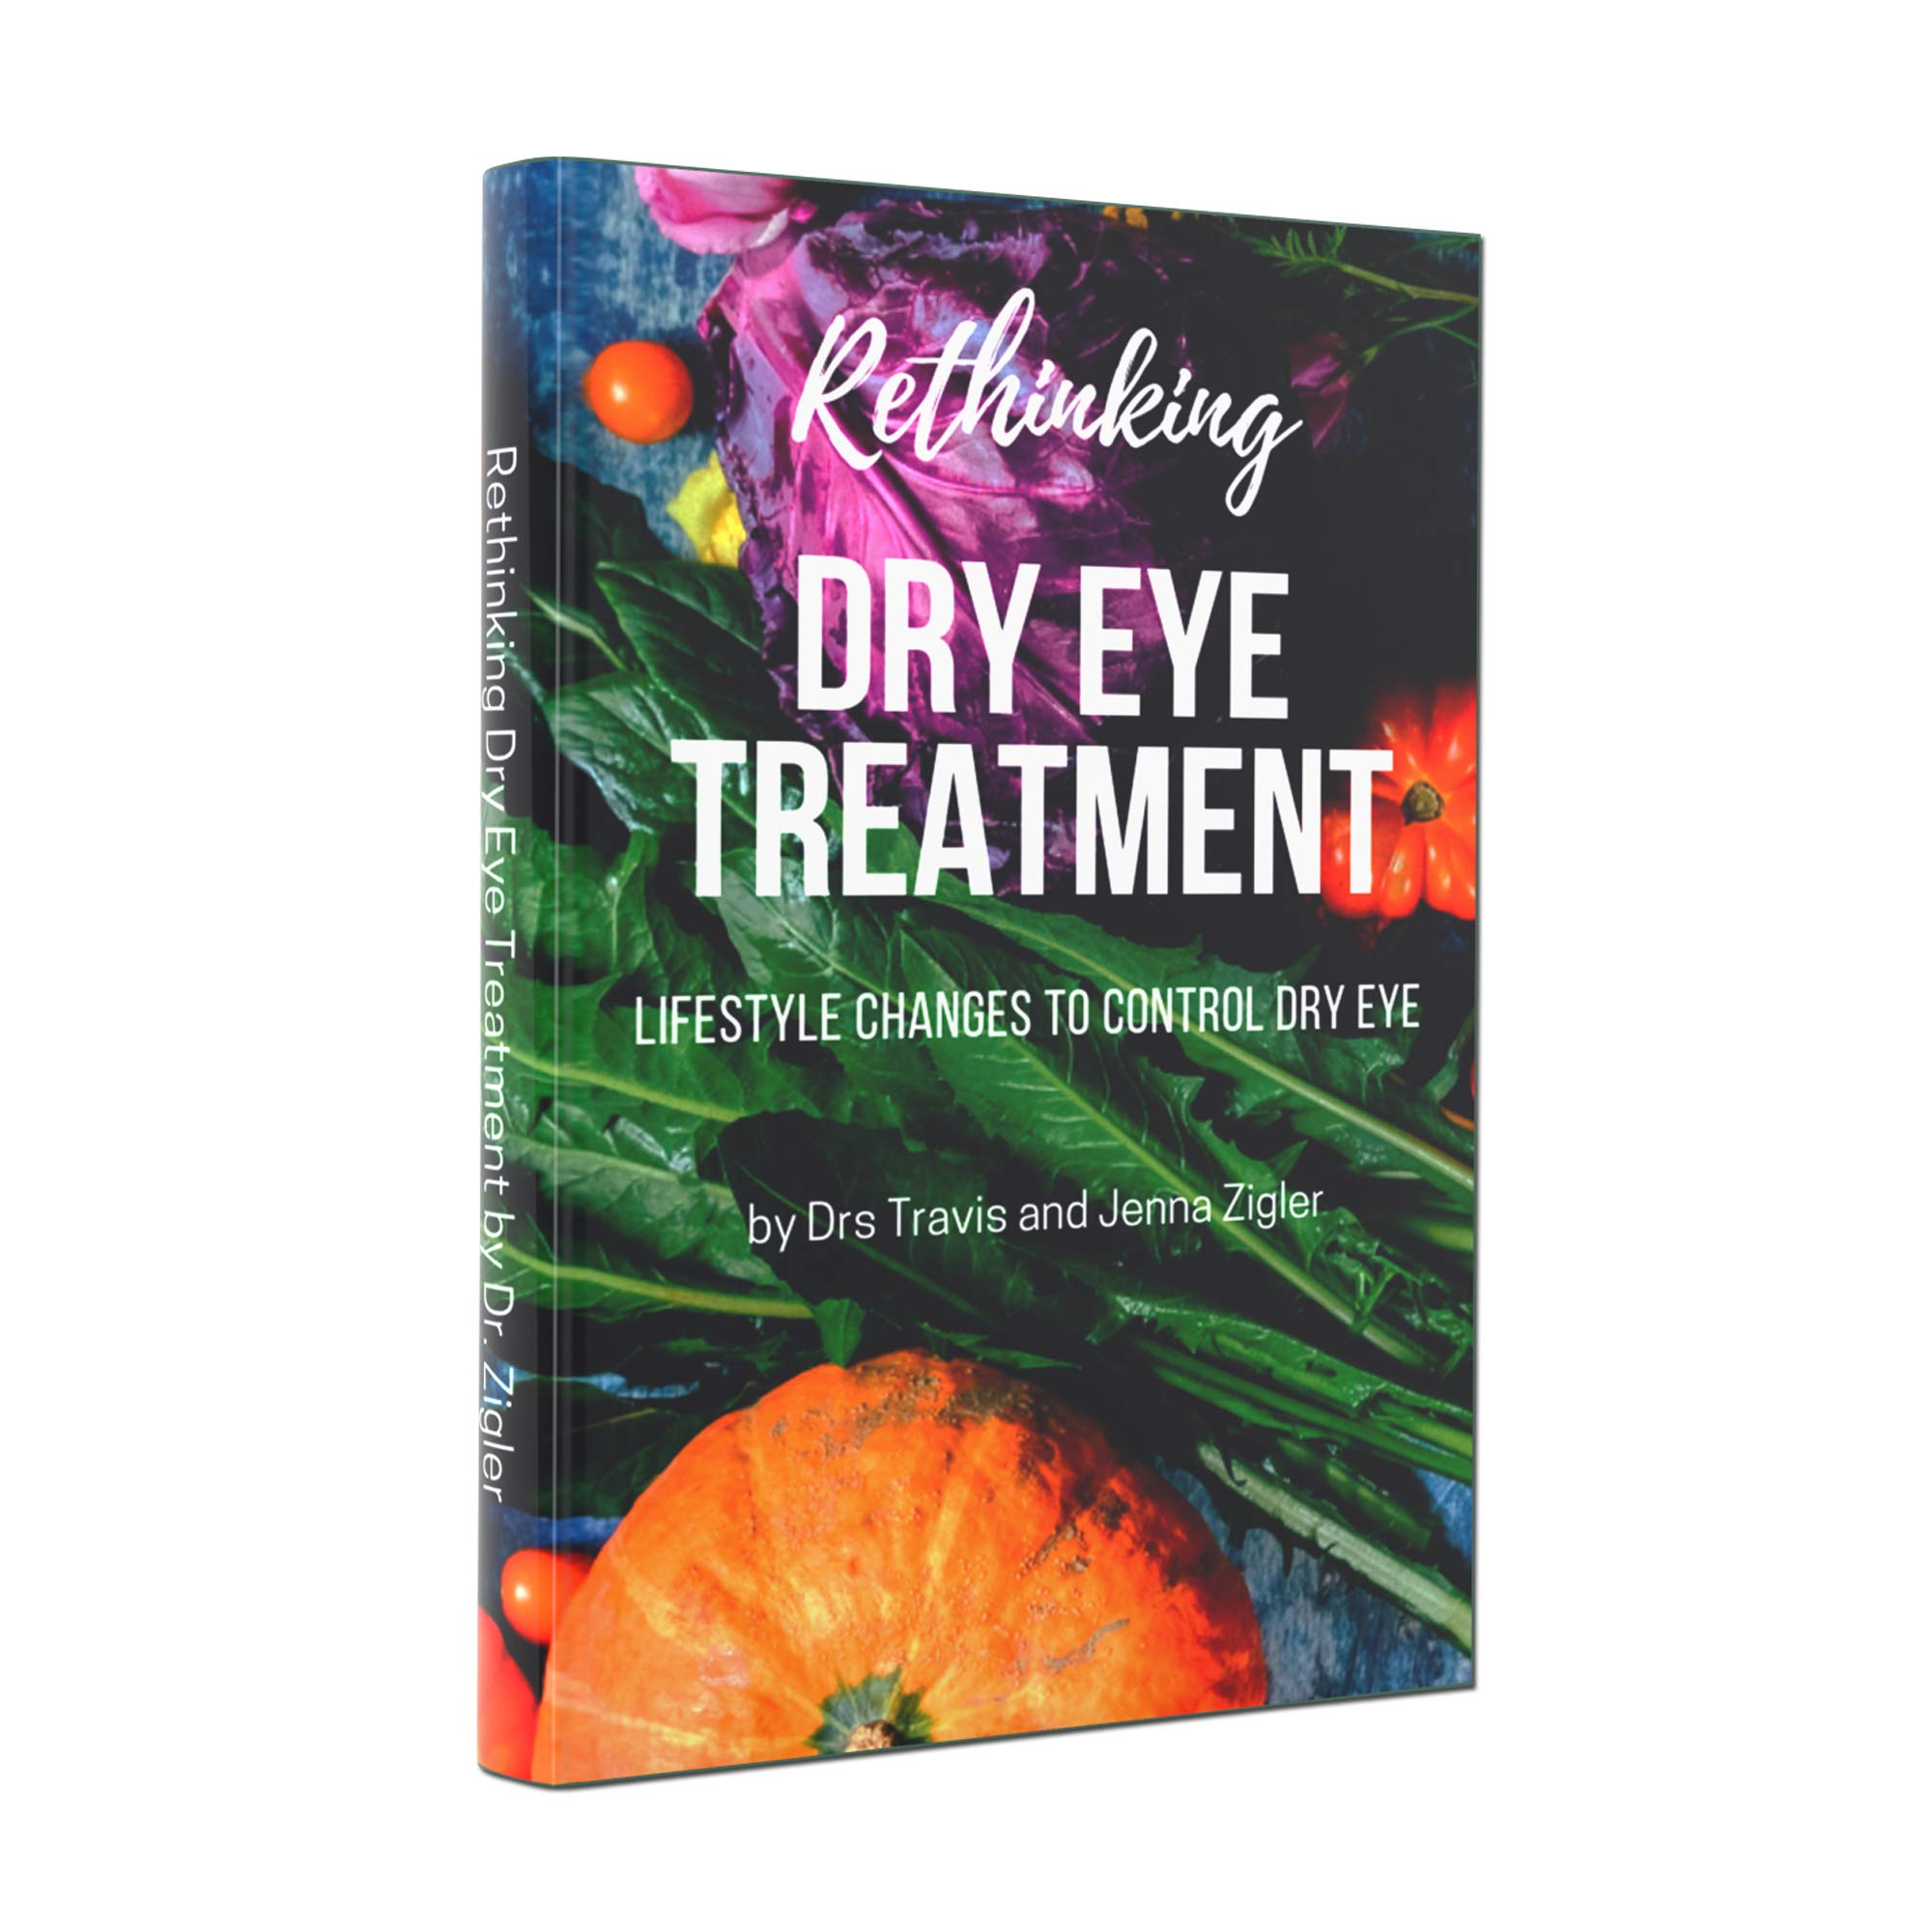 Rethinking Dry Eye Treatment Paperback Book by DRS. Jenna and Travis Zigler from The Dry Eye Show (Book) by Eye Love